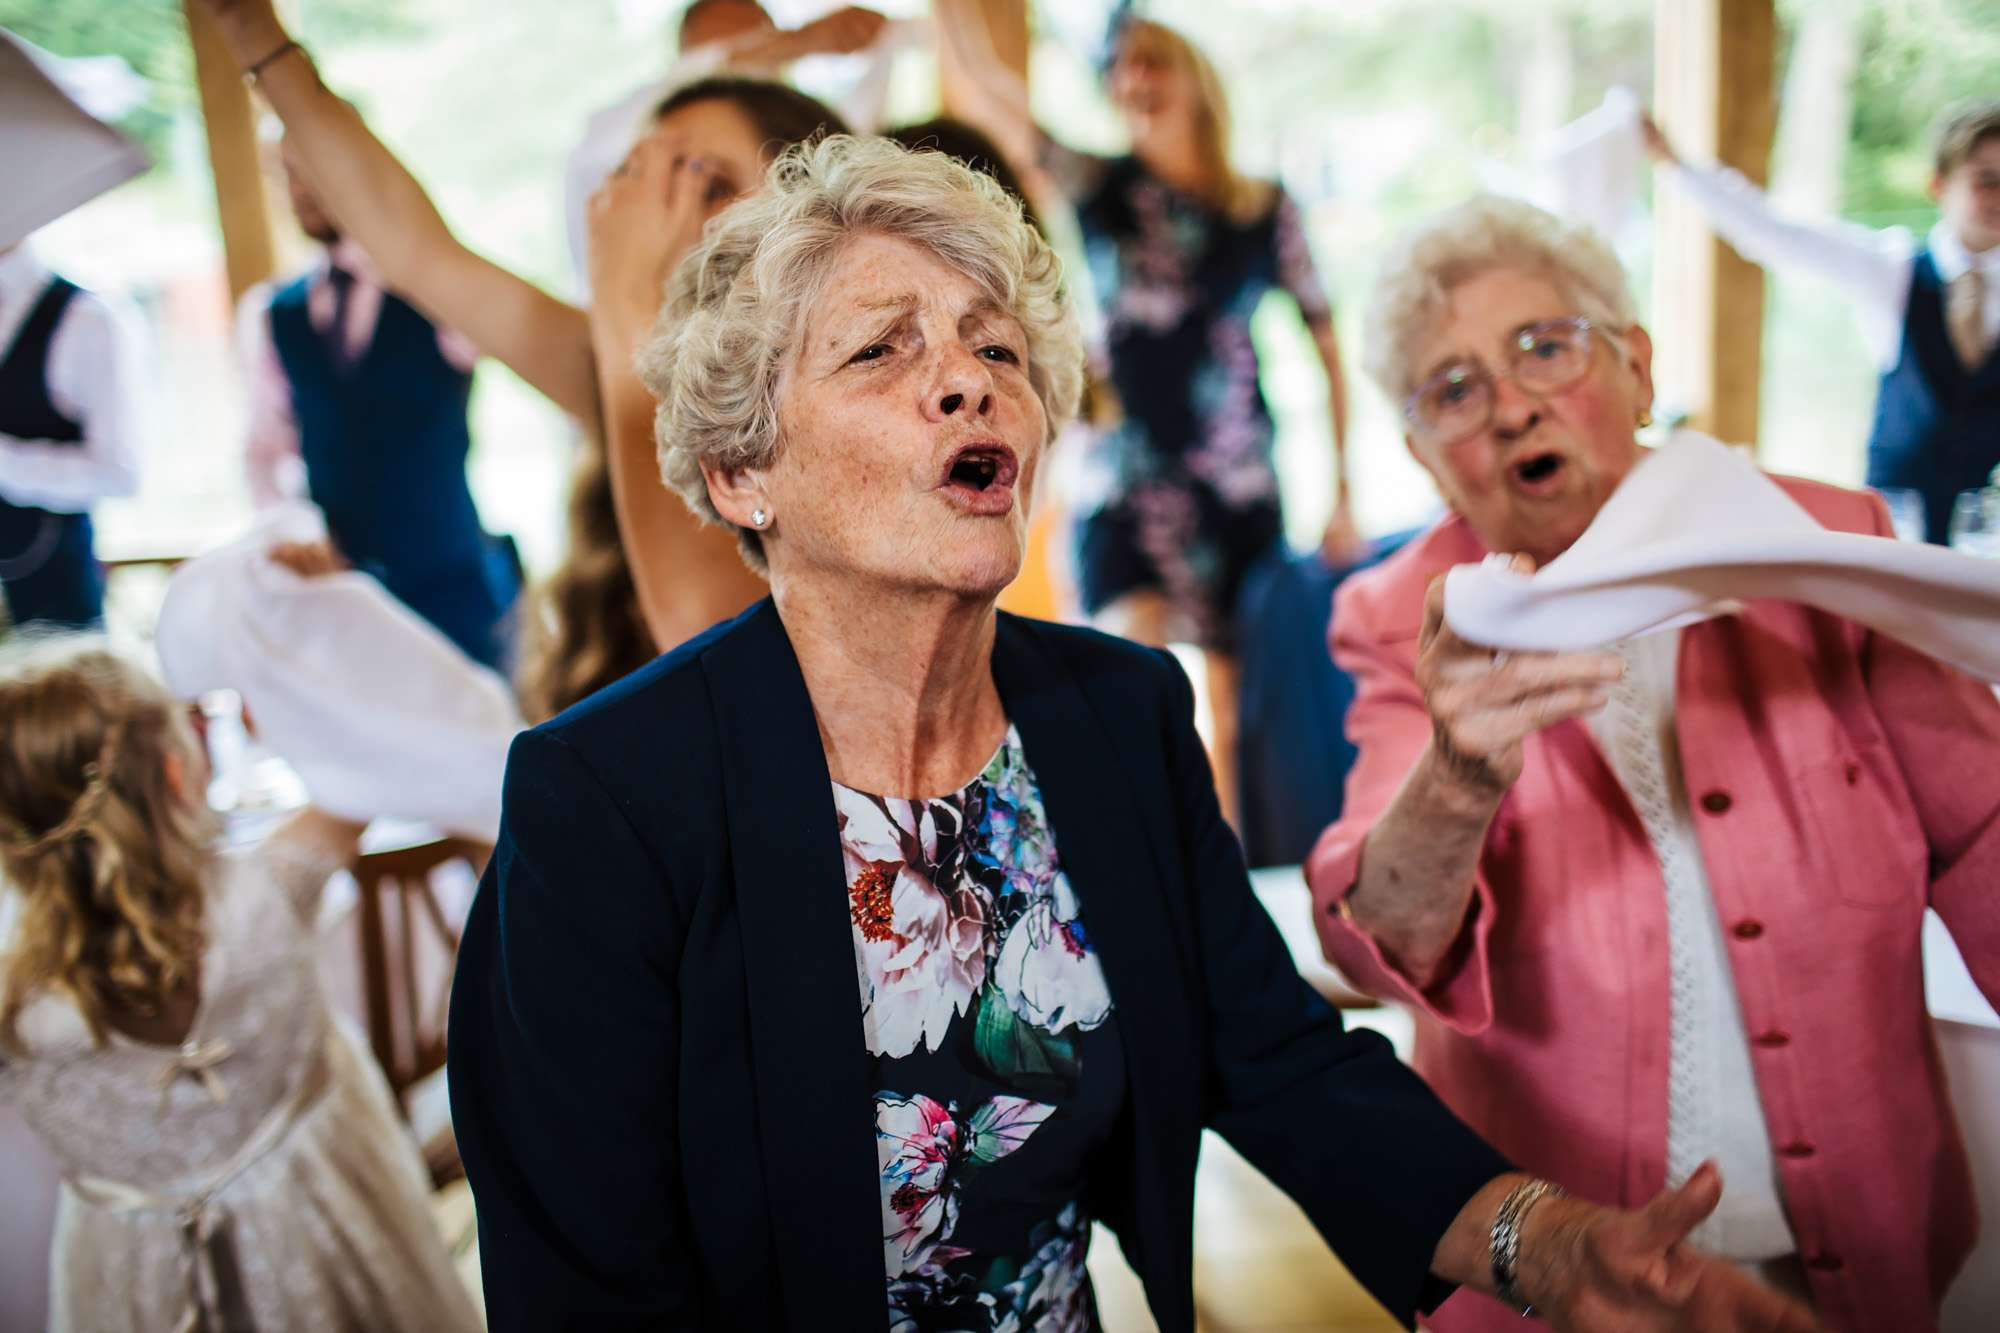 Granny singing at a wedding